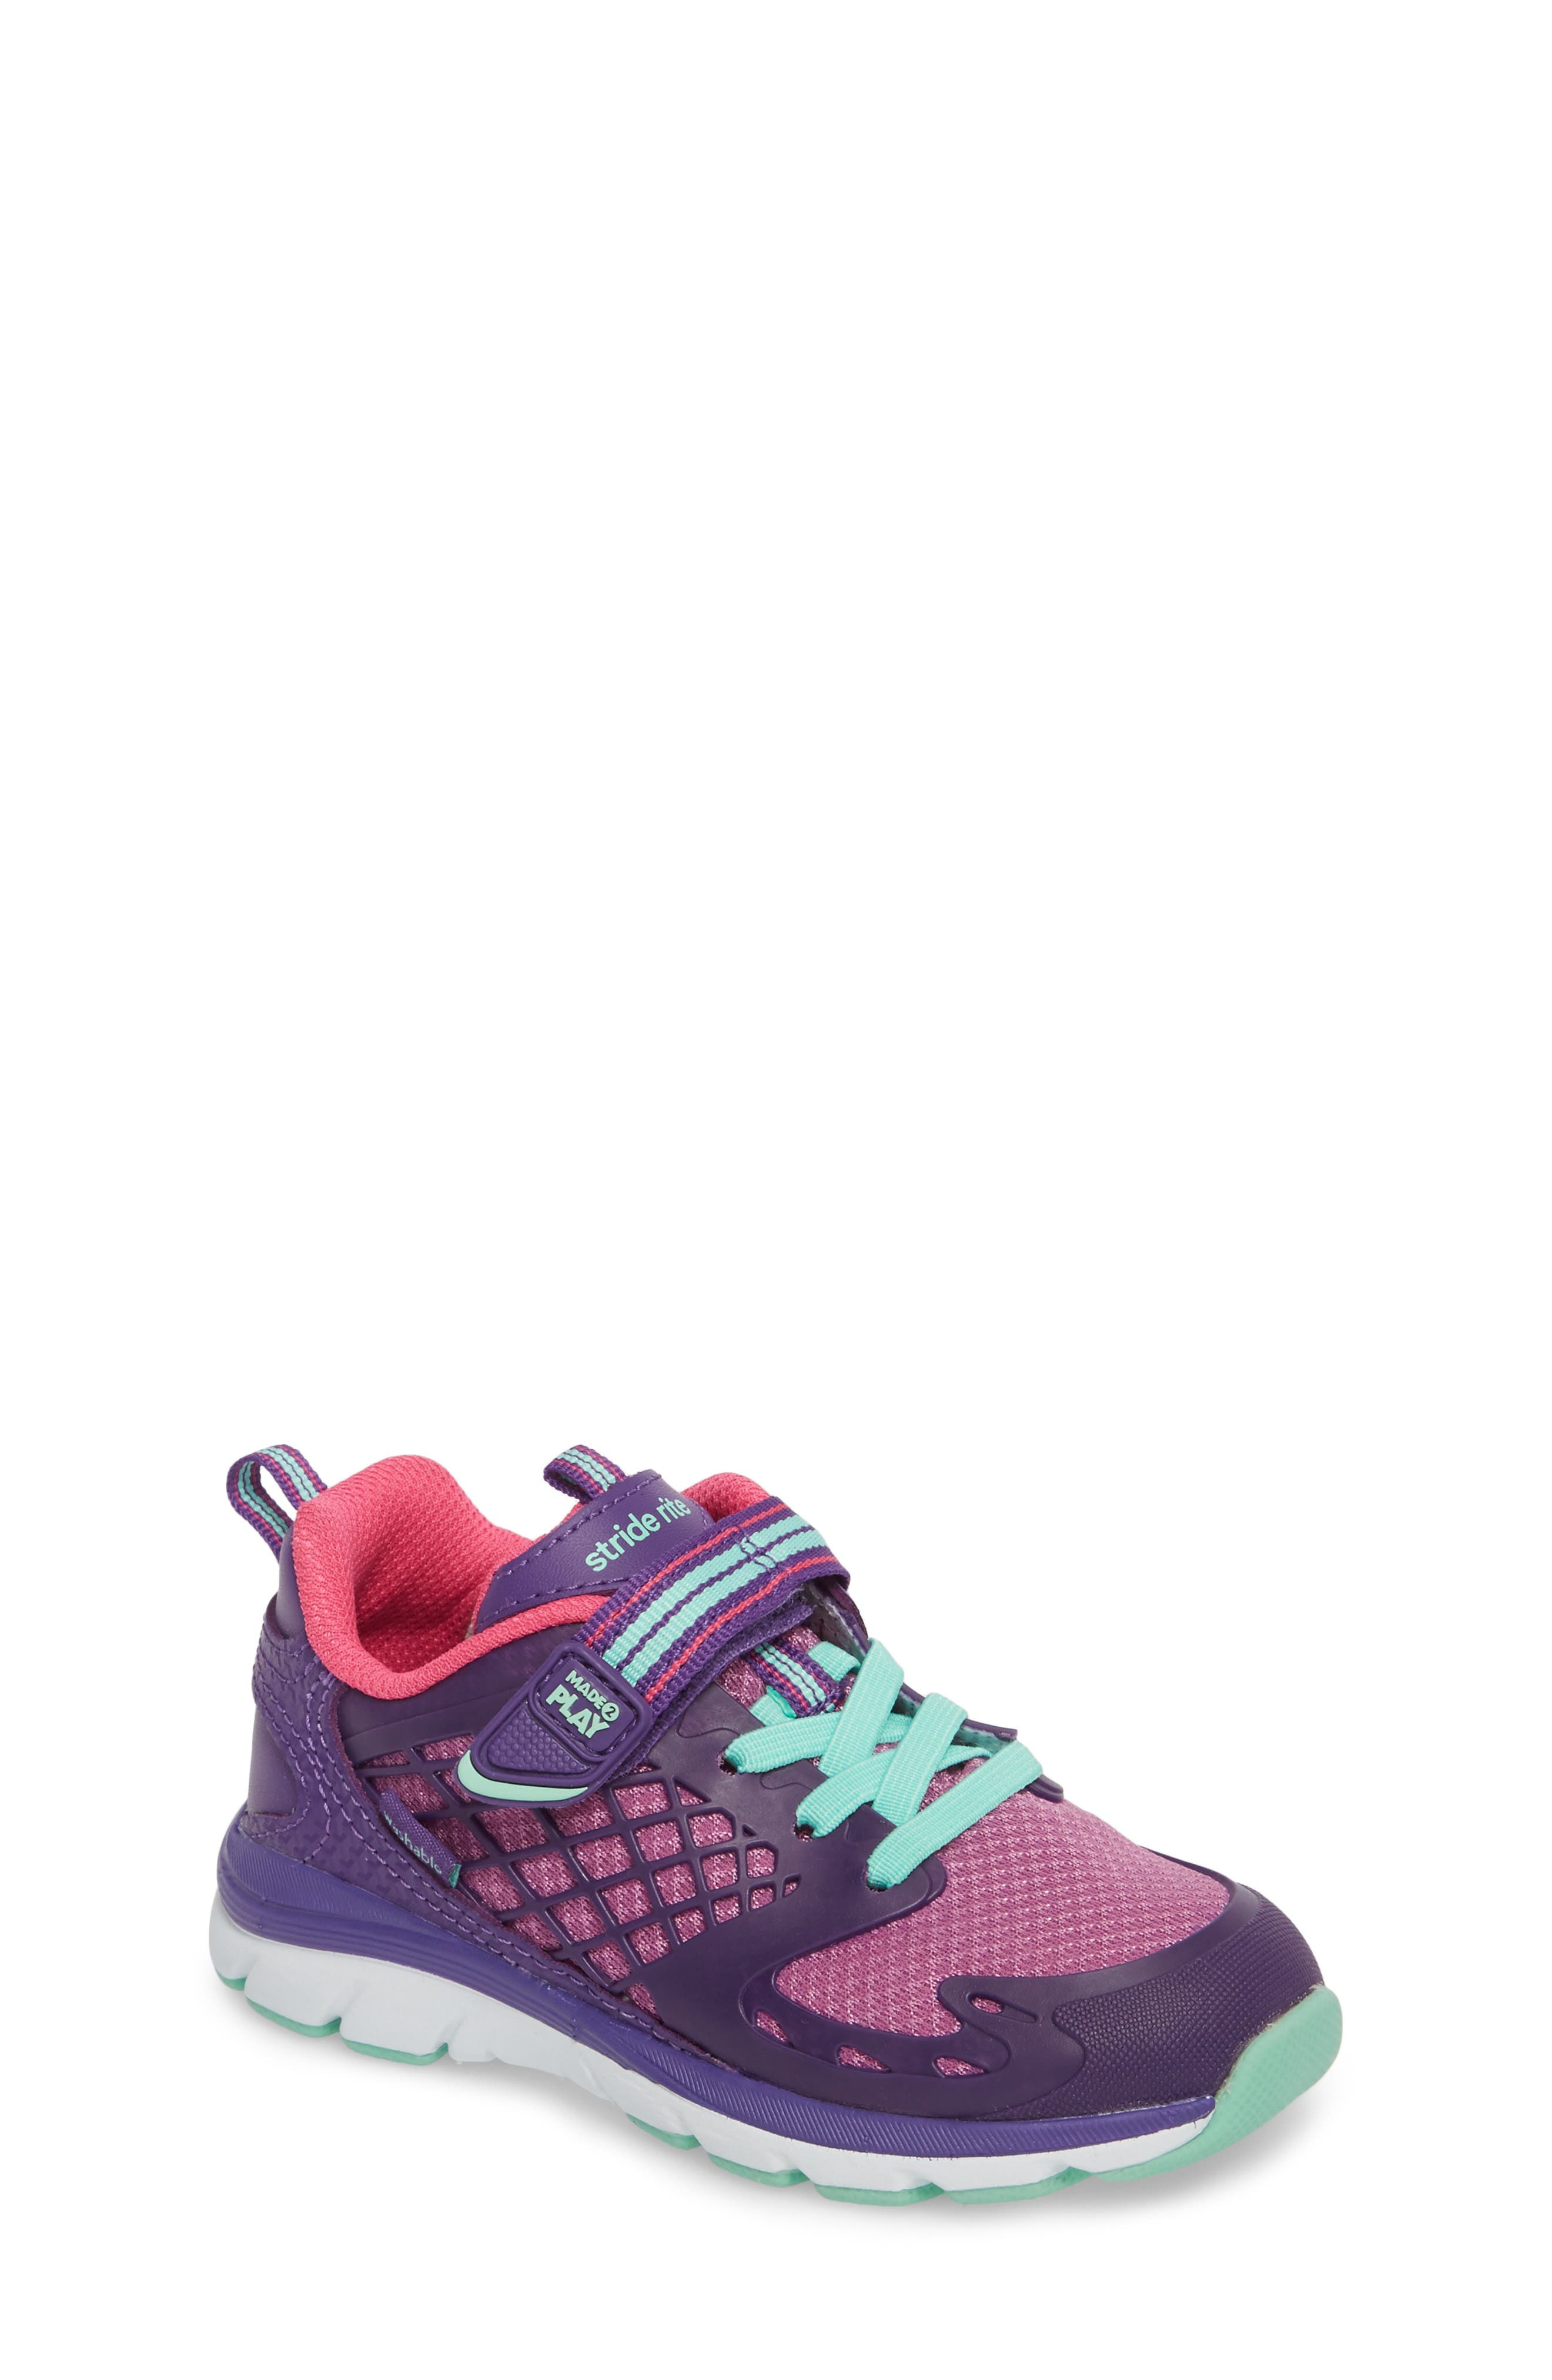 'Made2Play<sup>®</sup> Cannan Lace' Sneaker,                             Main thumbnail 1, color,                             Purple Leather/ Textile